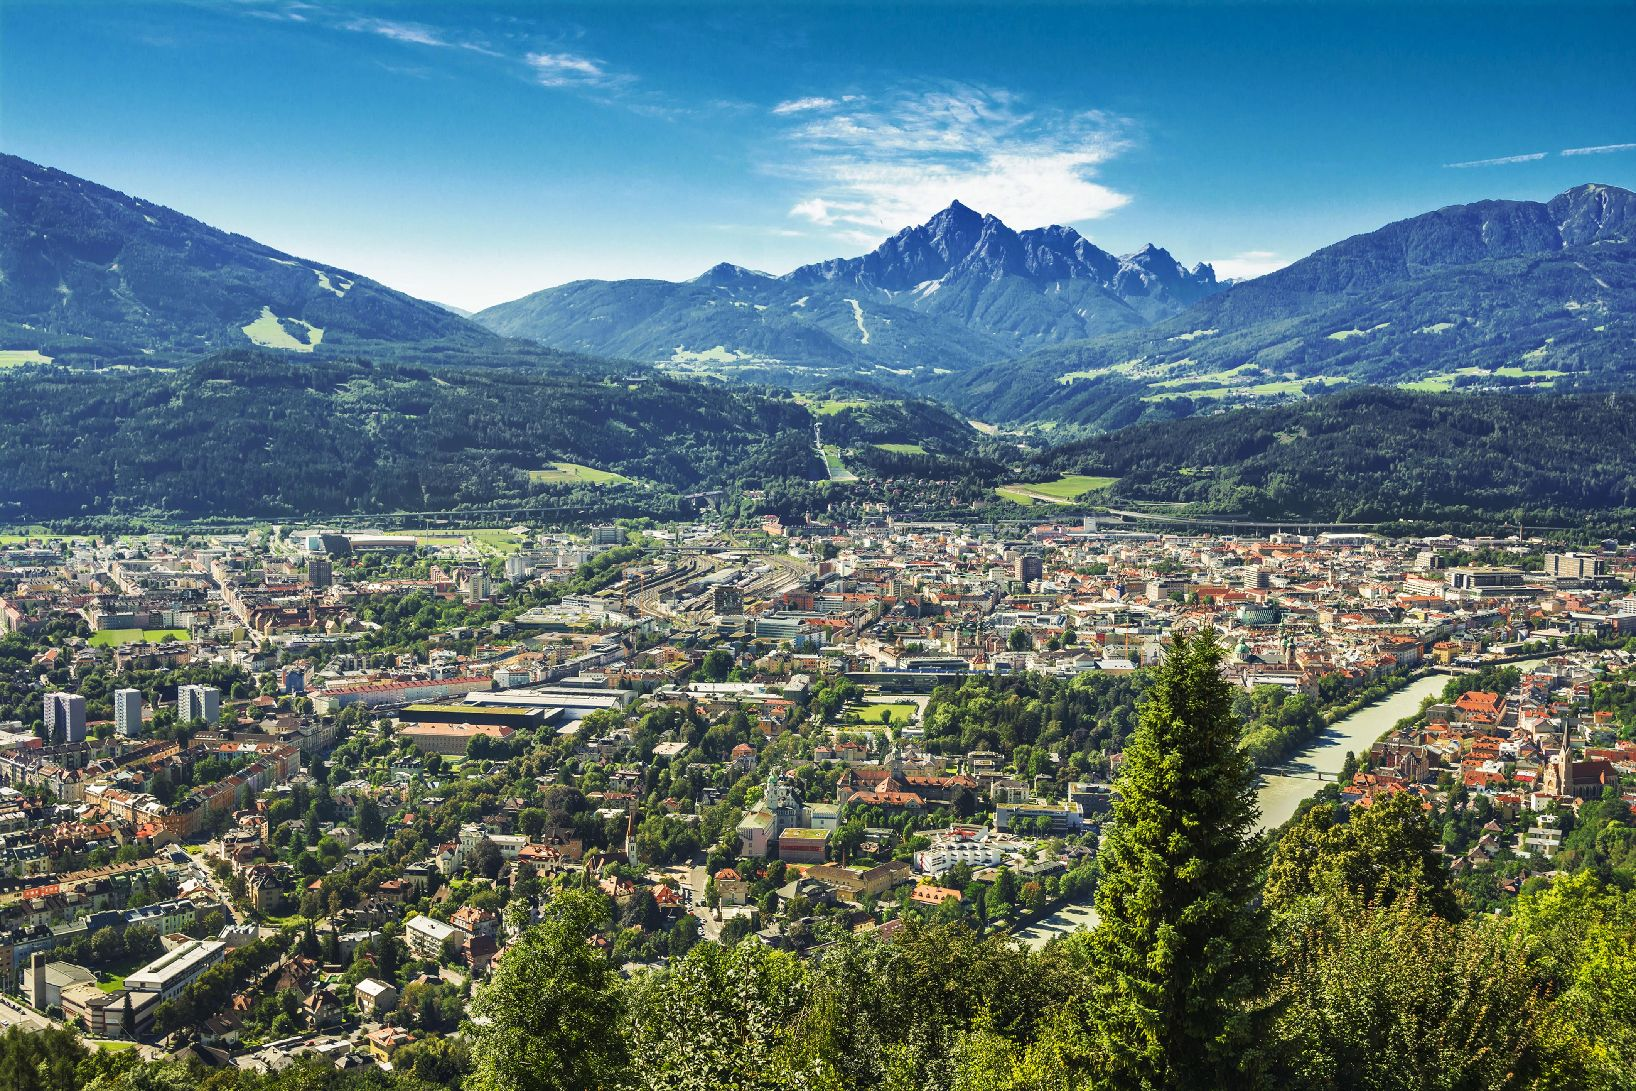 View of the city of Innsbruck